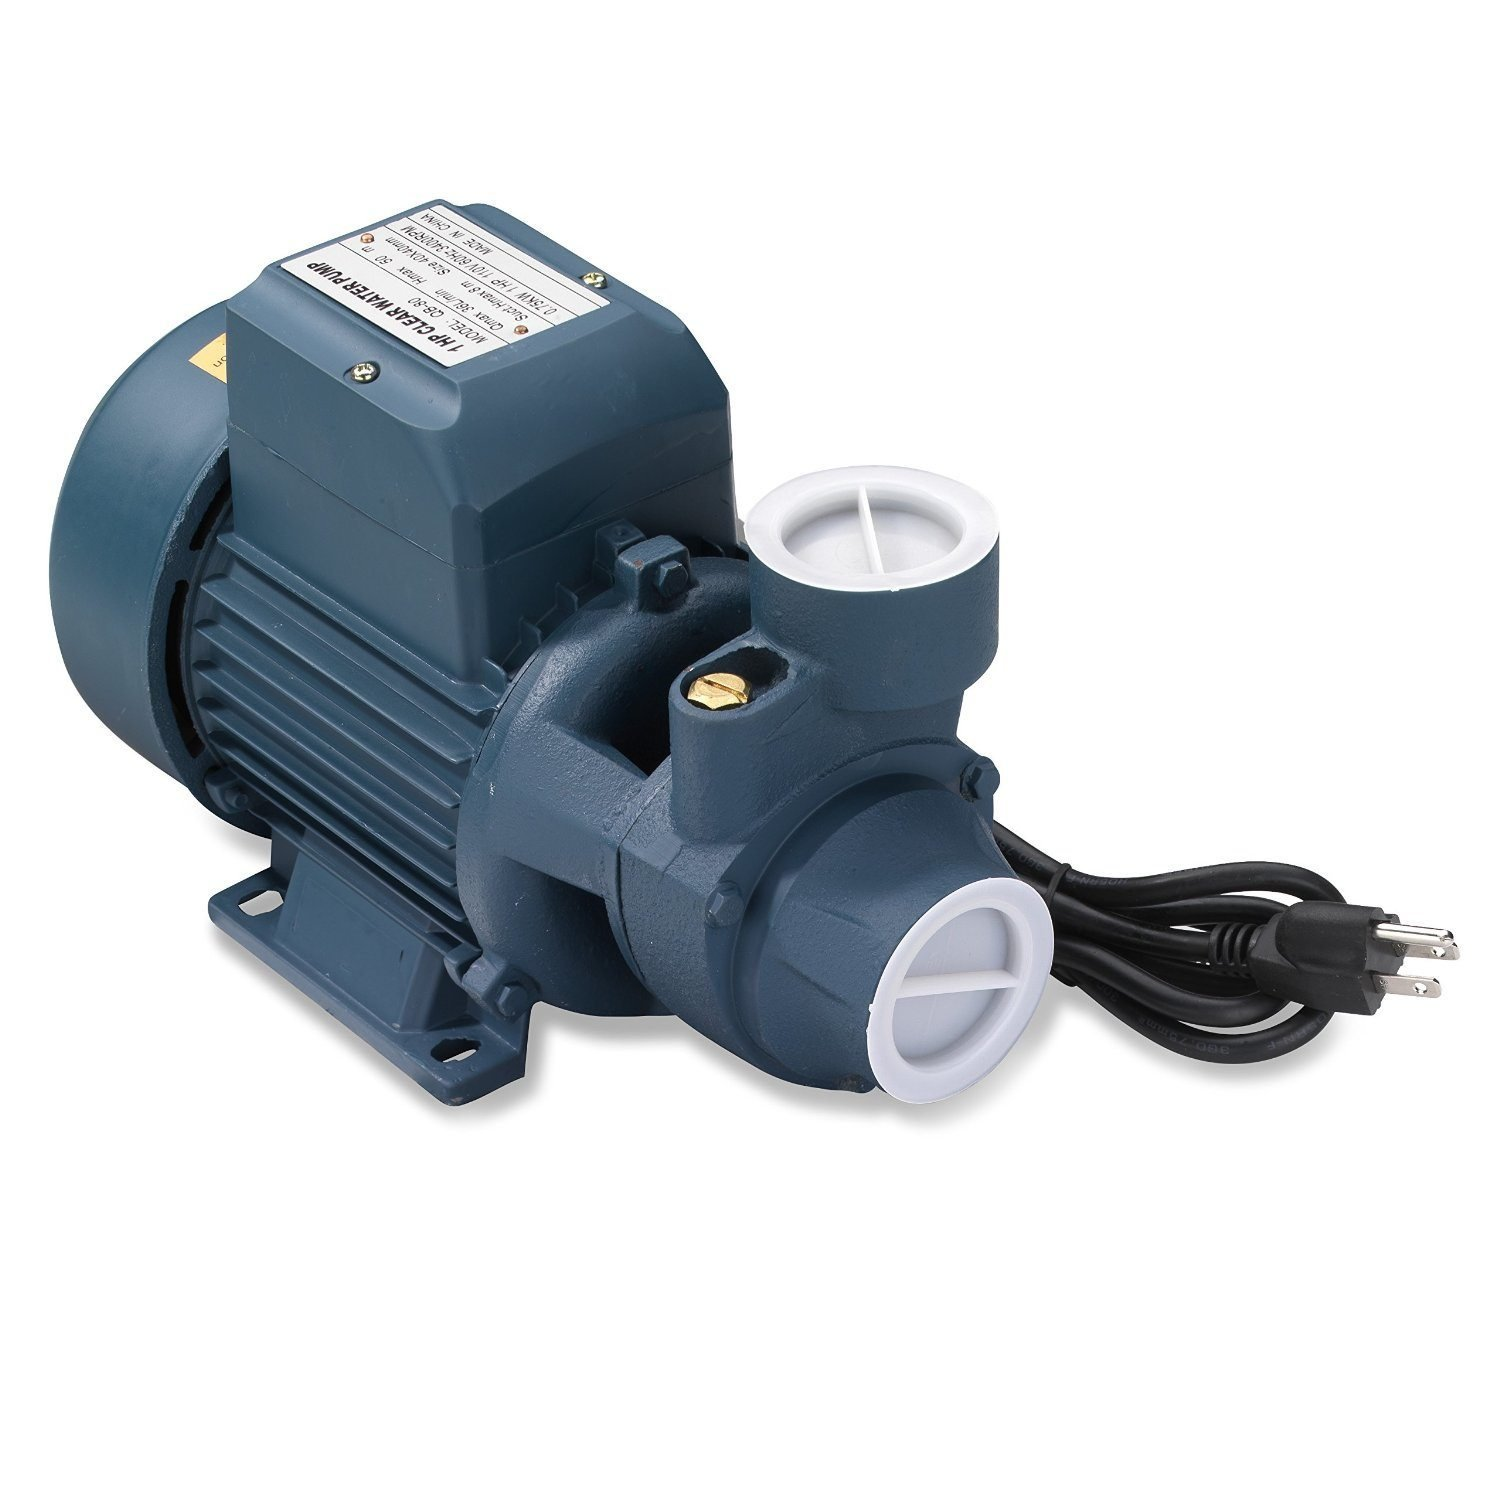 Neiko 50639 Electric Centrifugal Clear Water Pump, 1 HP by Neiko